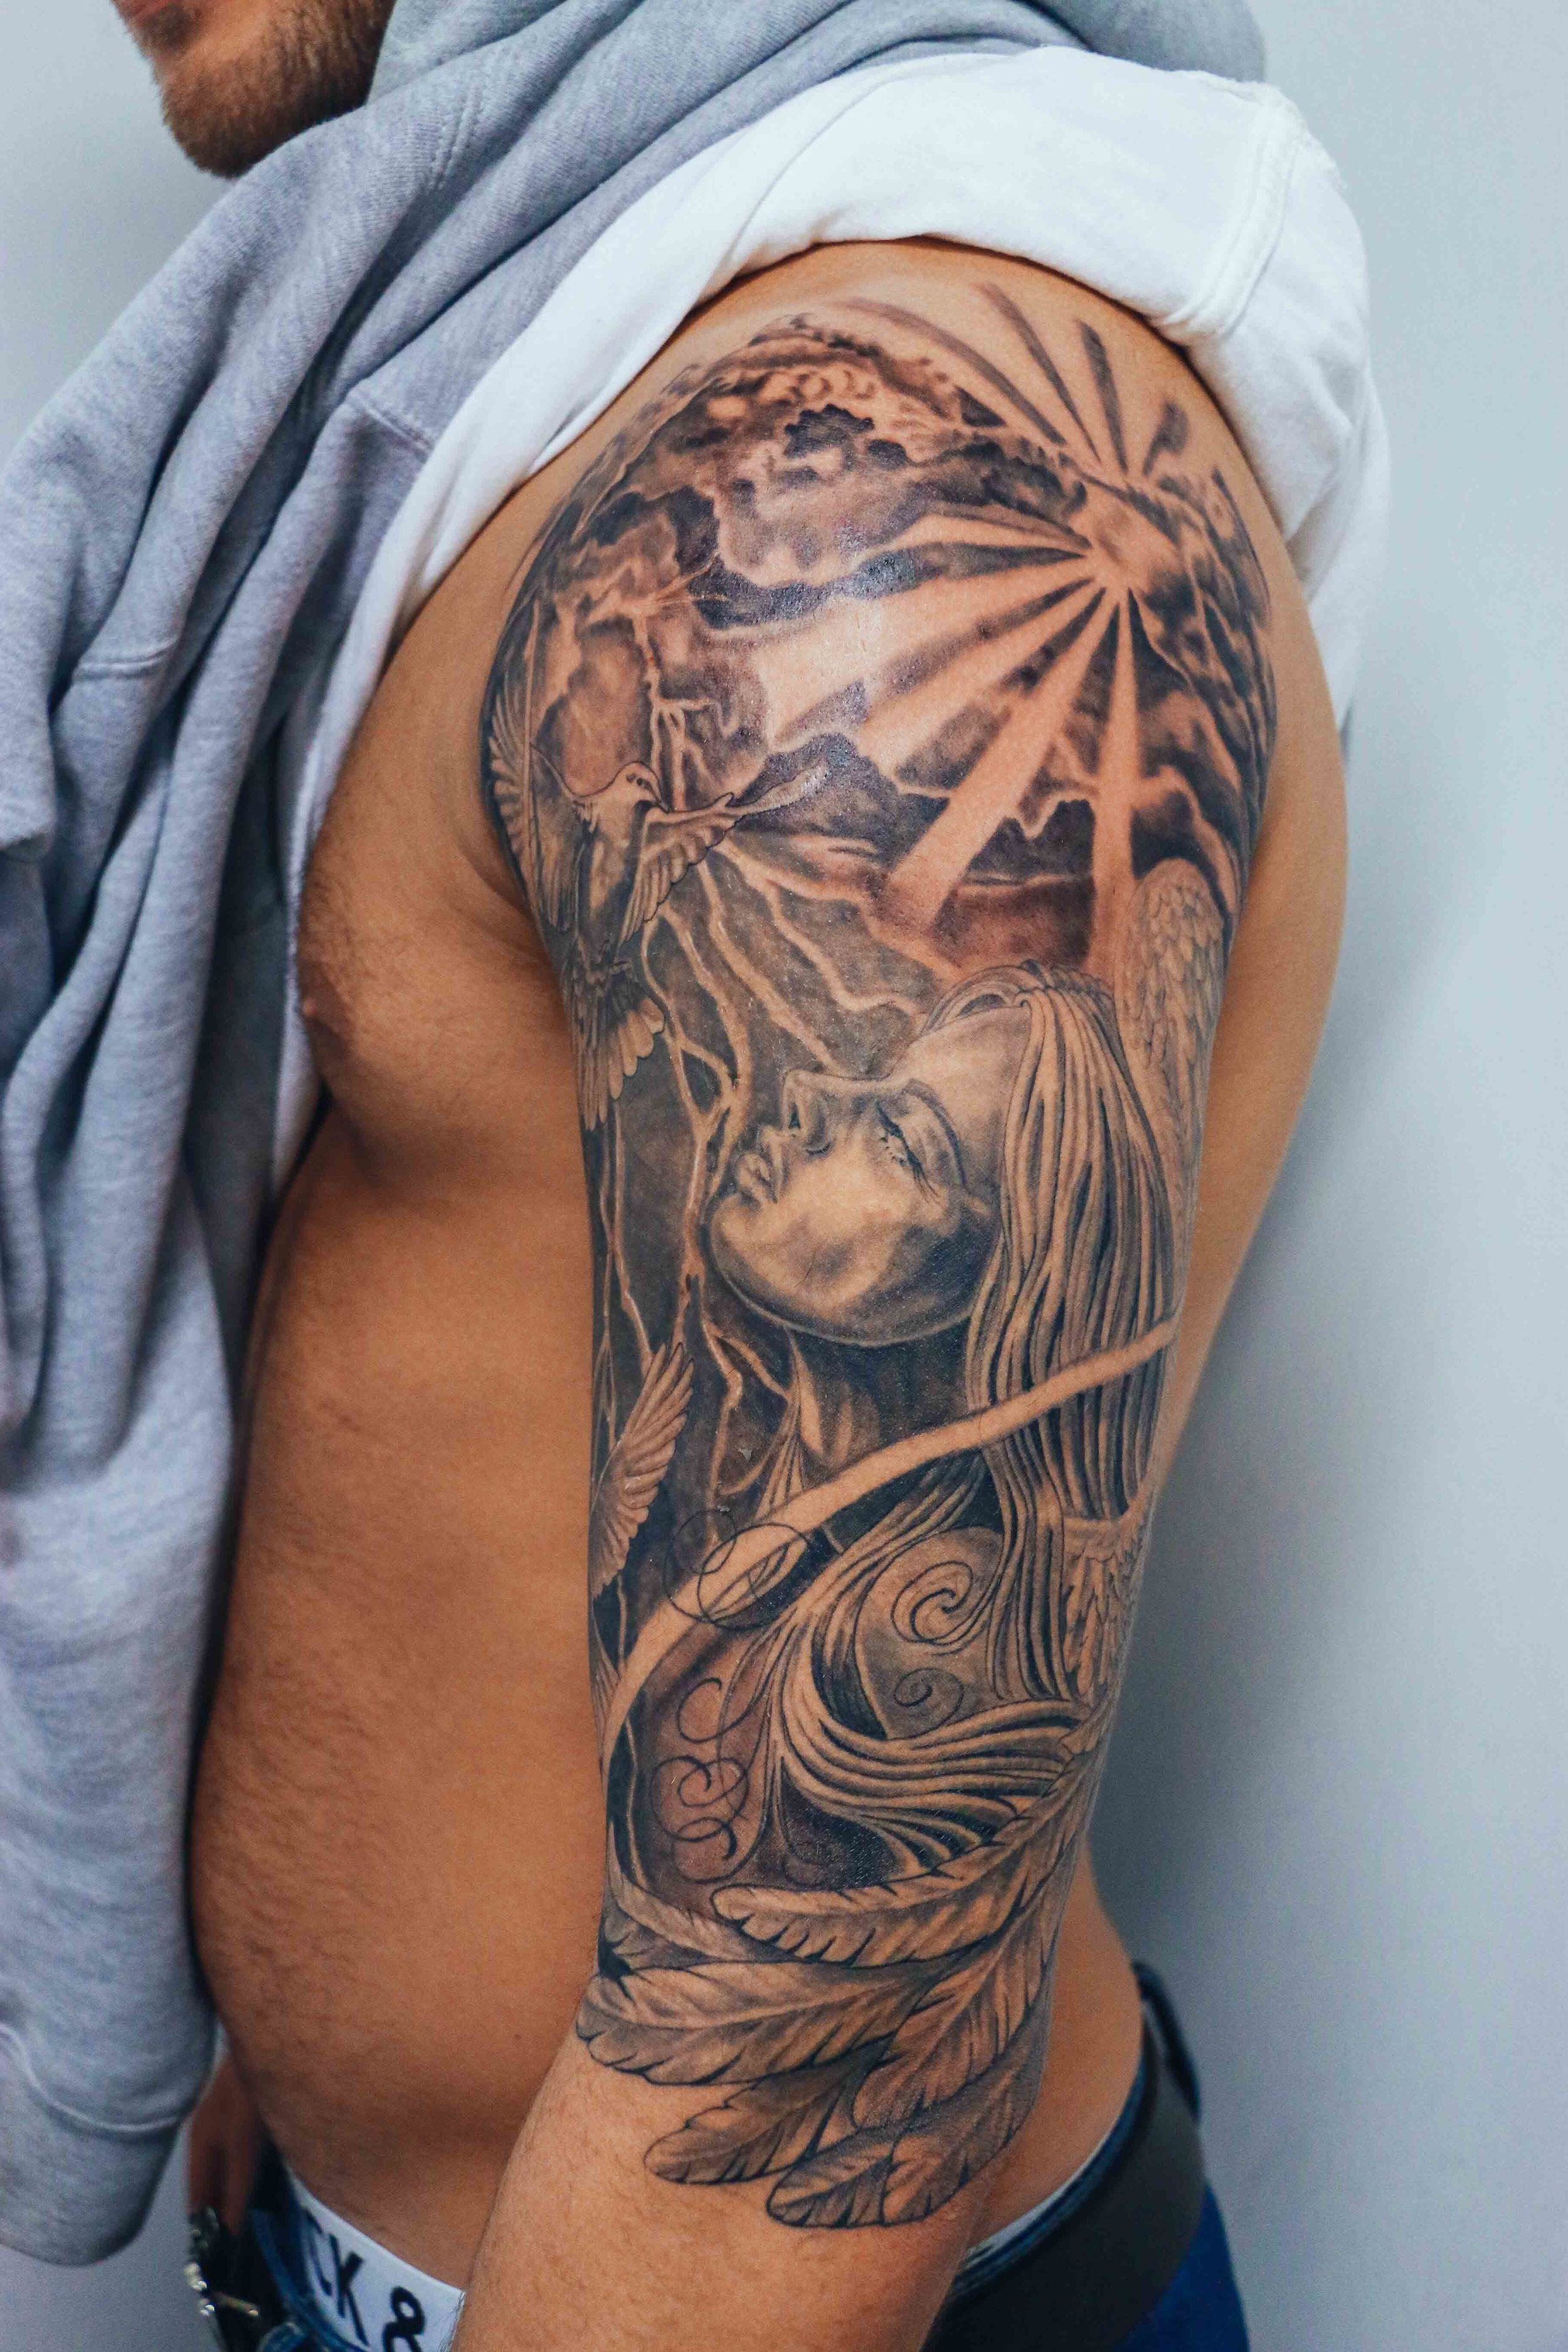 fyink-tattoos-aprshoplife-20.jpg